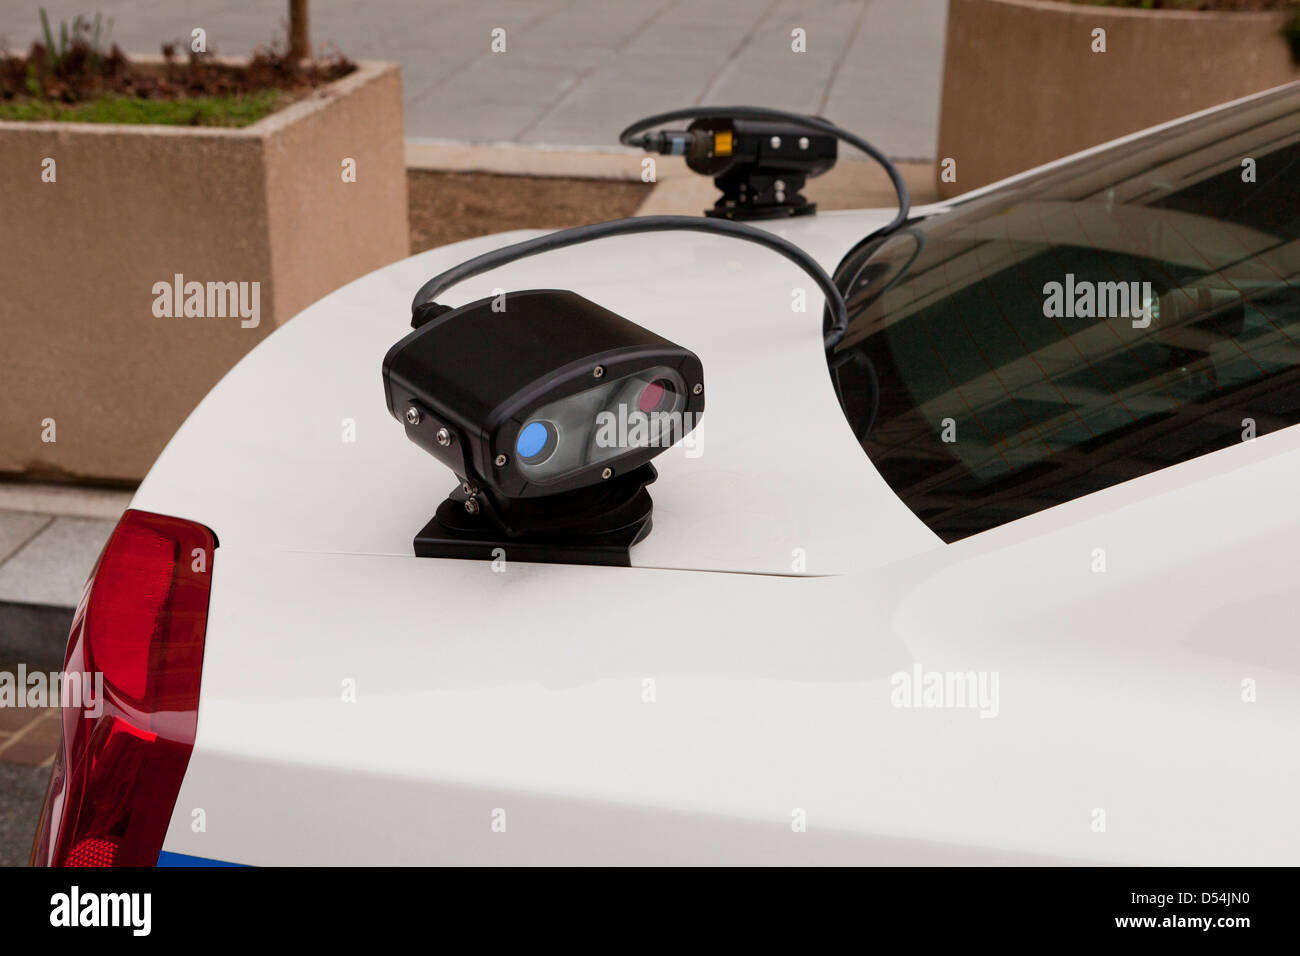 Automatic license plate recognition camera on back of police car - Washington, DC USA - Stock Image